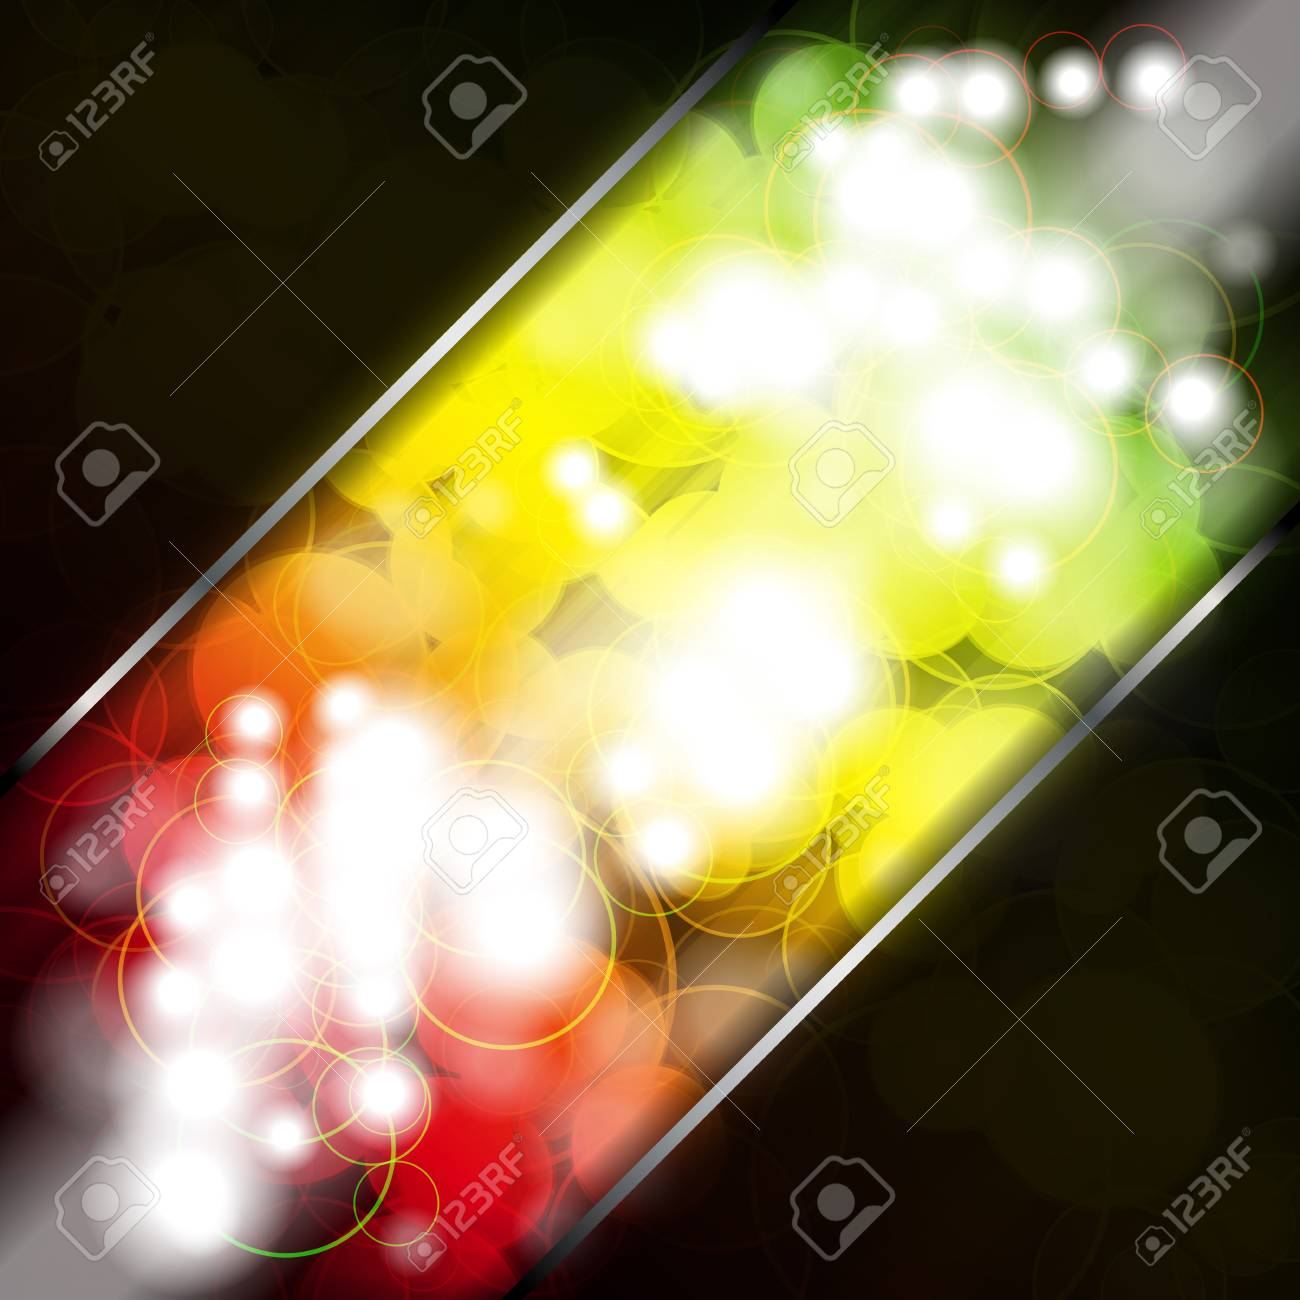 Multicolored transparent circles on a dark background. Stock Vector - 8080733